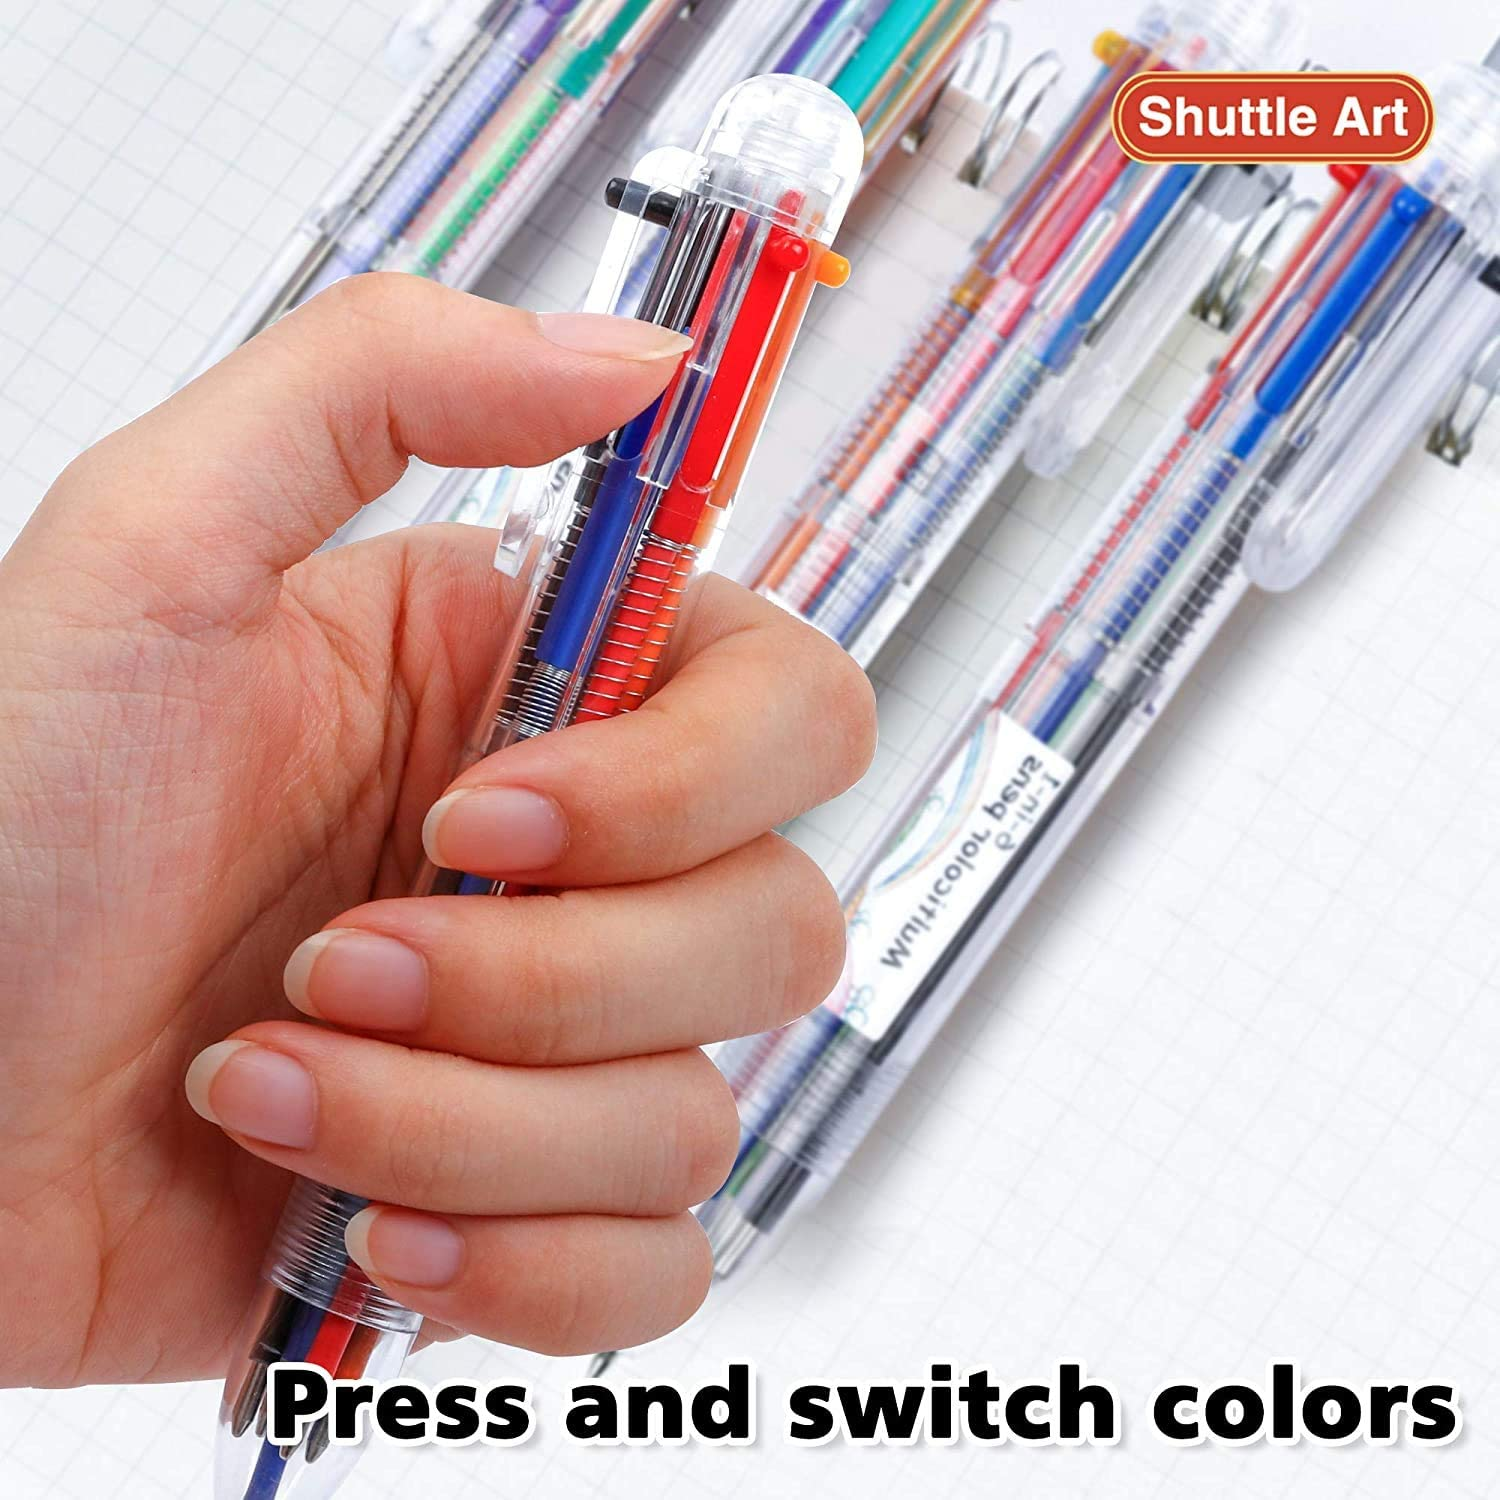 23 Pack 6-in-1 0.7mm Retractable Ballpoint Pens for Office School Supplies Students Children Gift